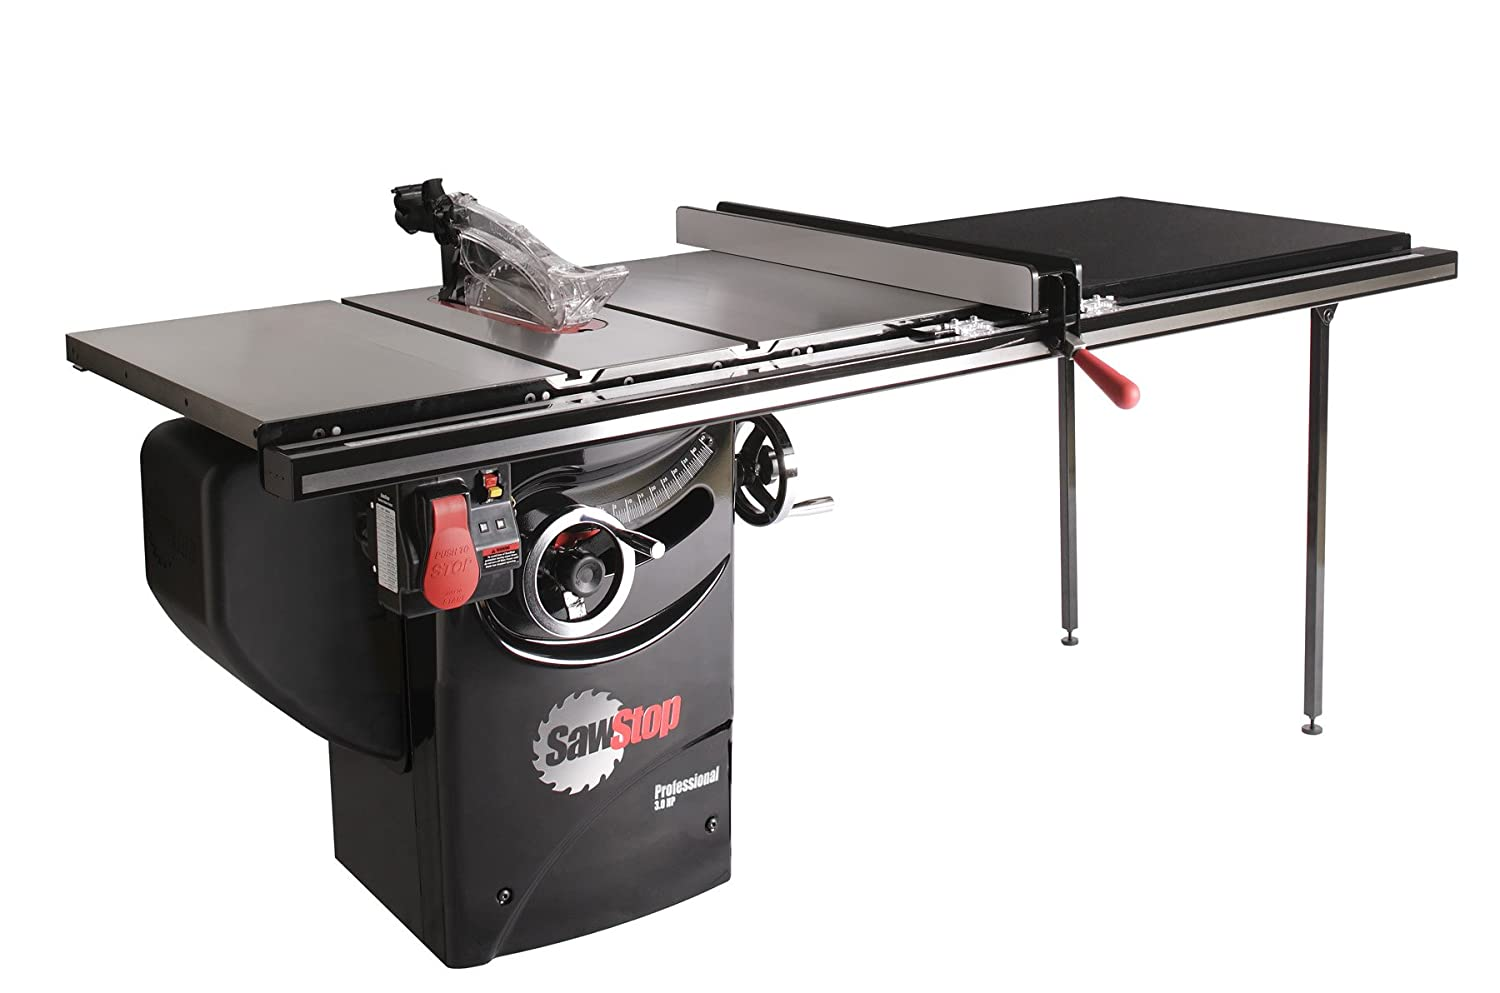 2. SawStop 3HP Professional Cabinet Saw